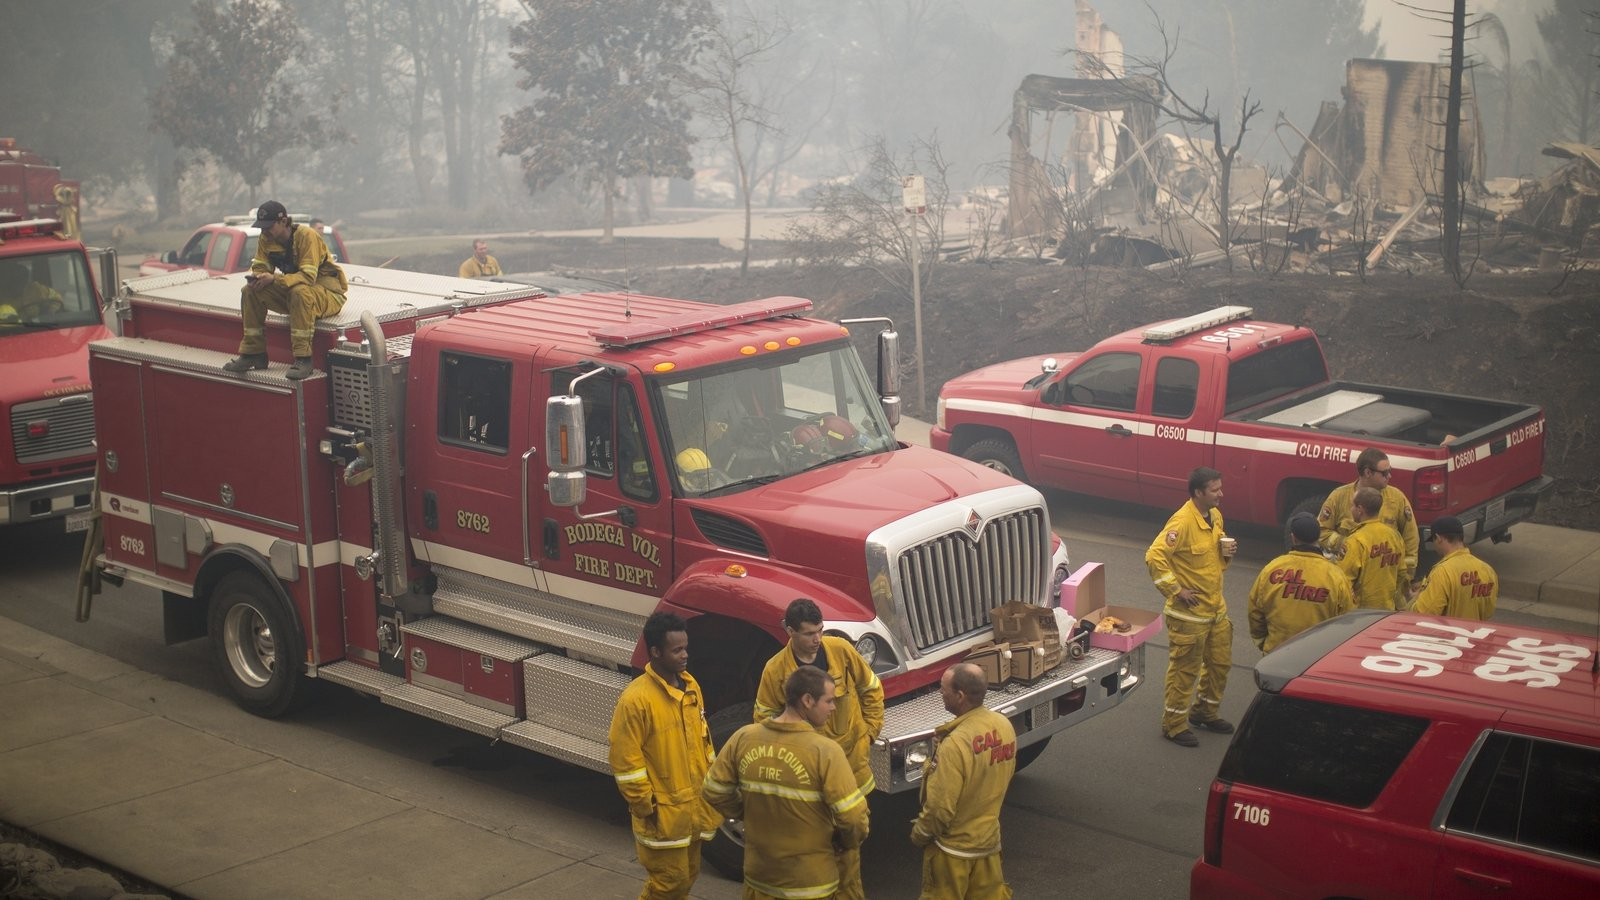 Dry weather could spread California wildfires